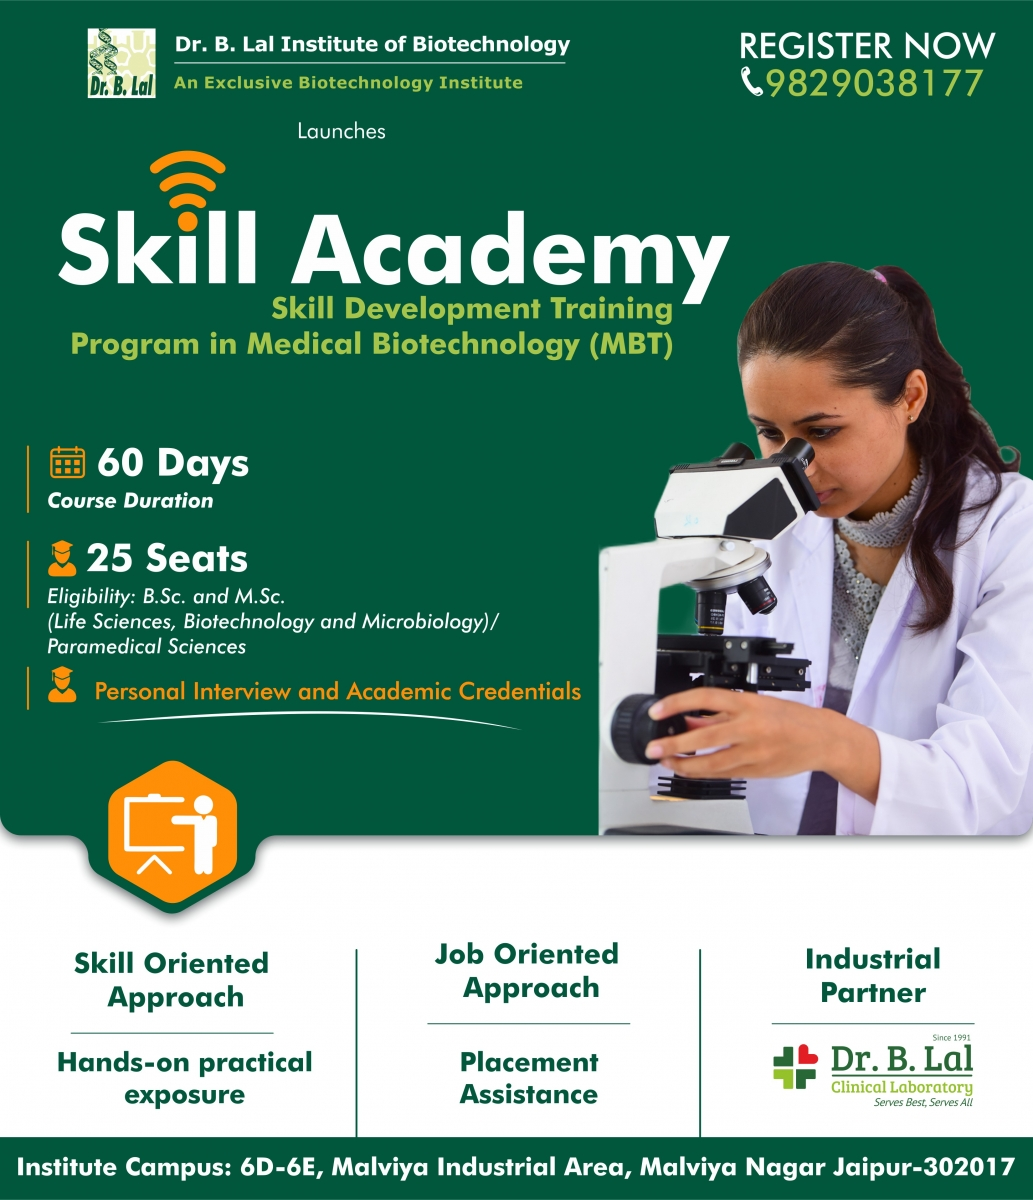 Skill Development Training Program in Medical Biotechnology (MBT) | Skill Academy